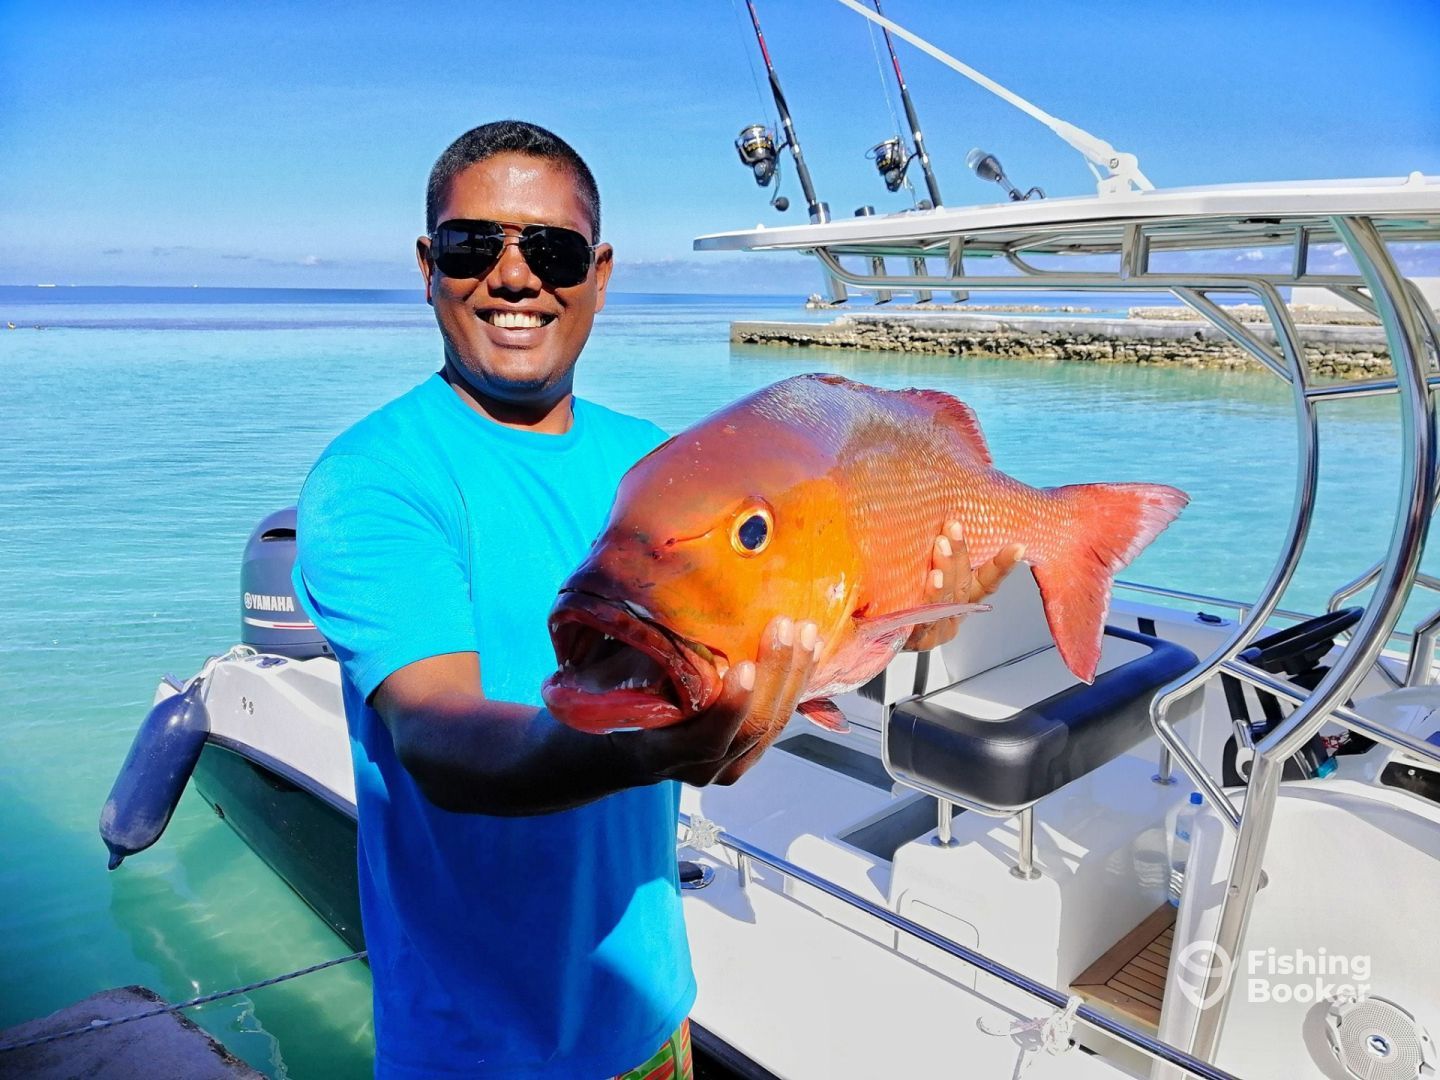 Captain Reyley and the Red Snapper